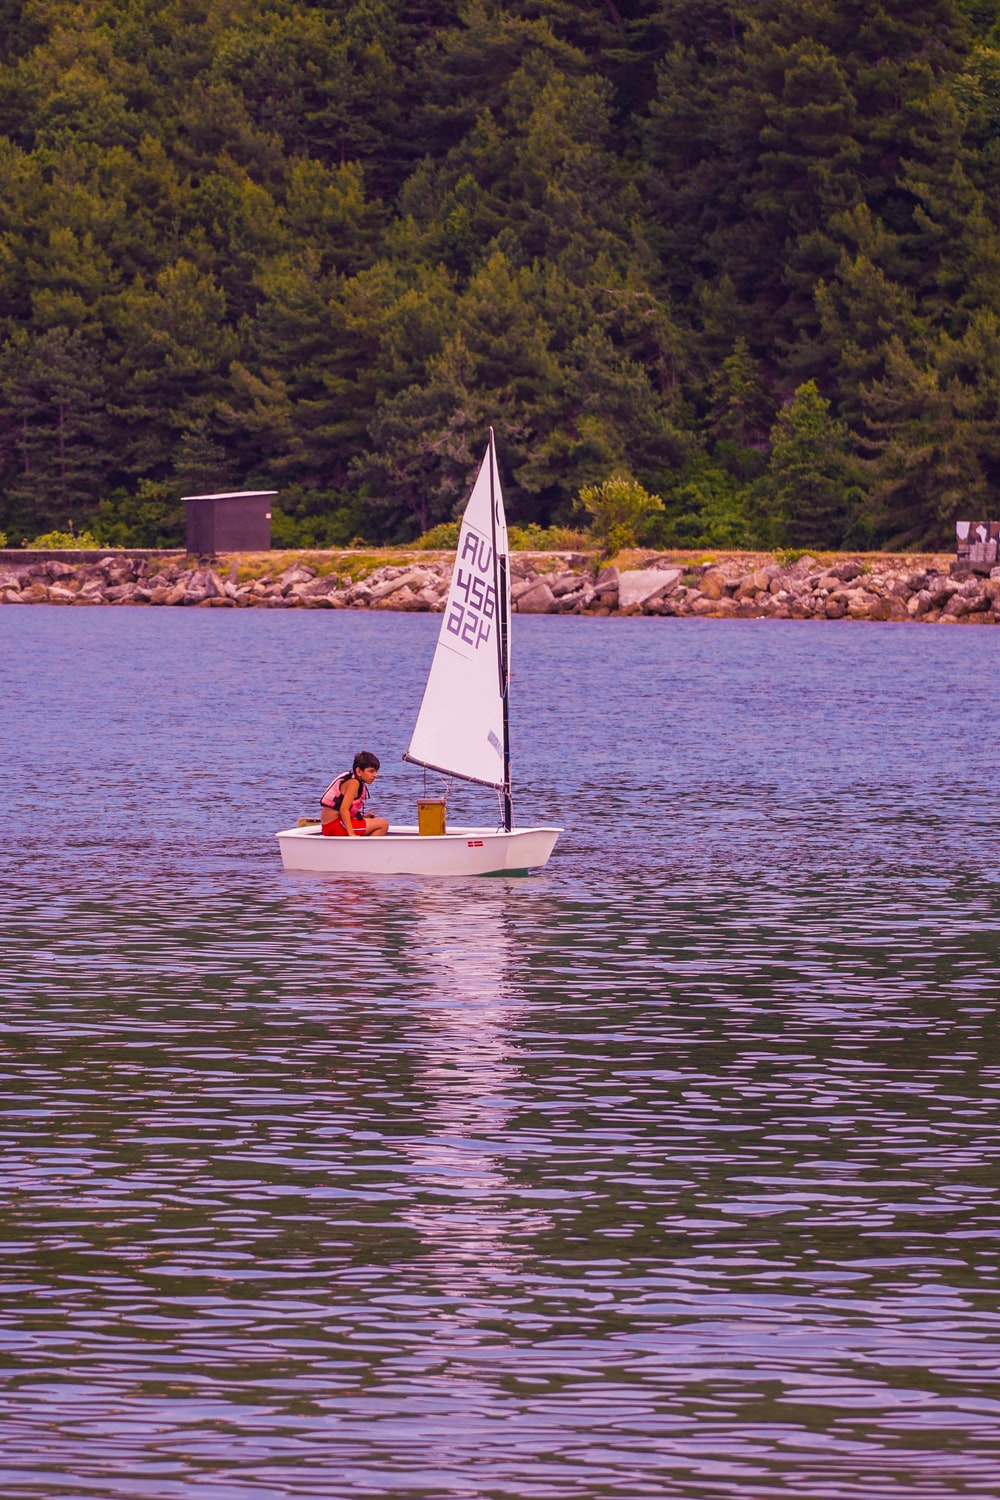 person riding on white and yellow boat on body of water during daytime